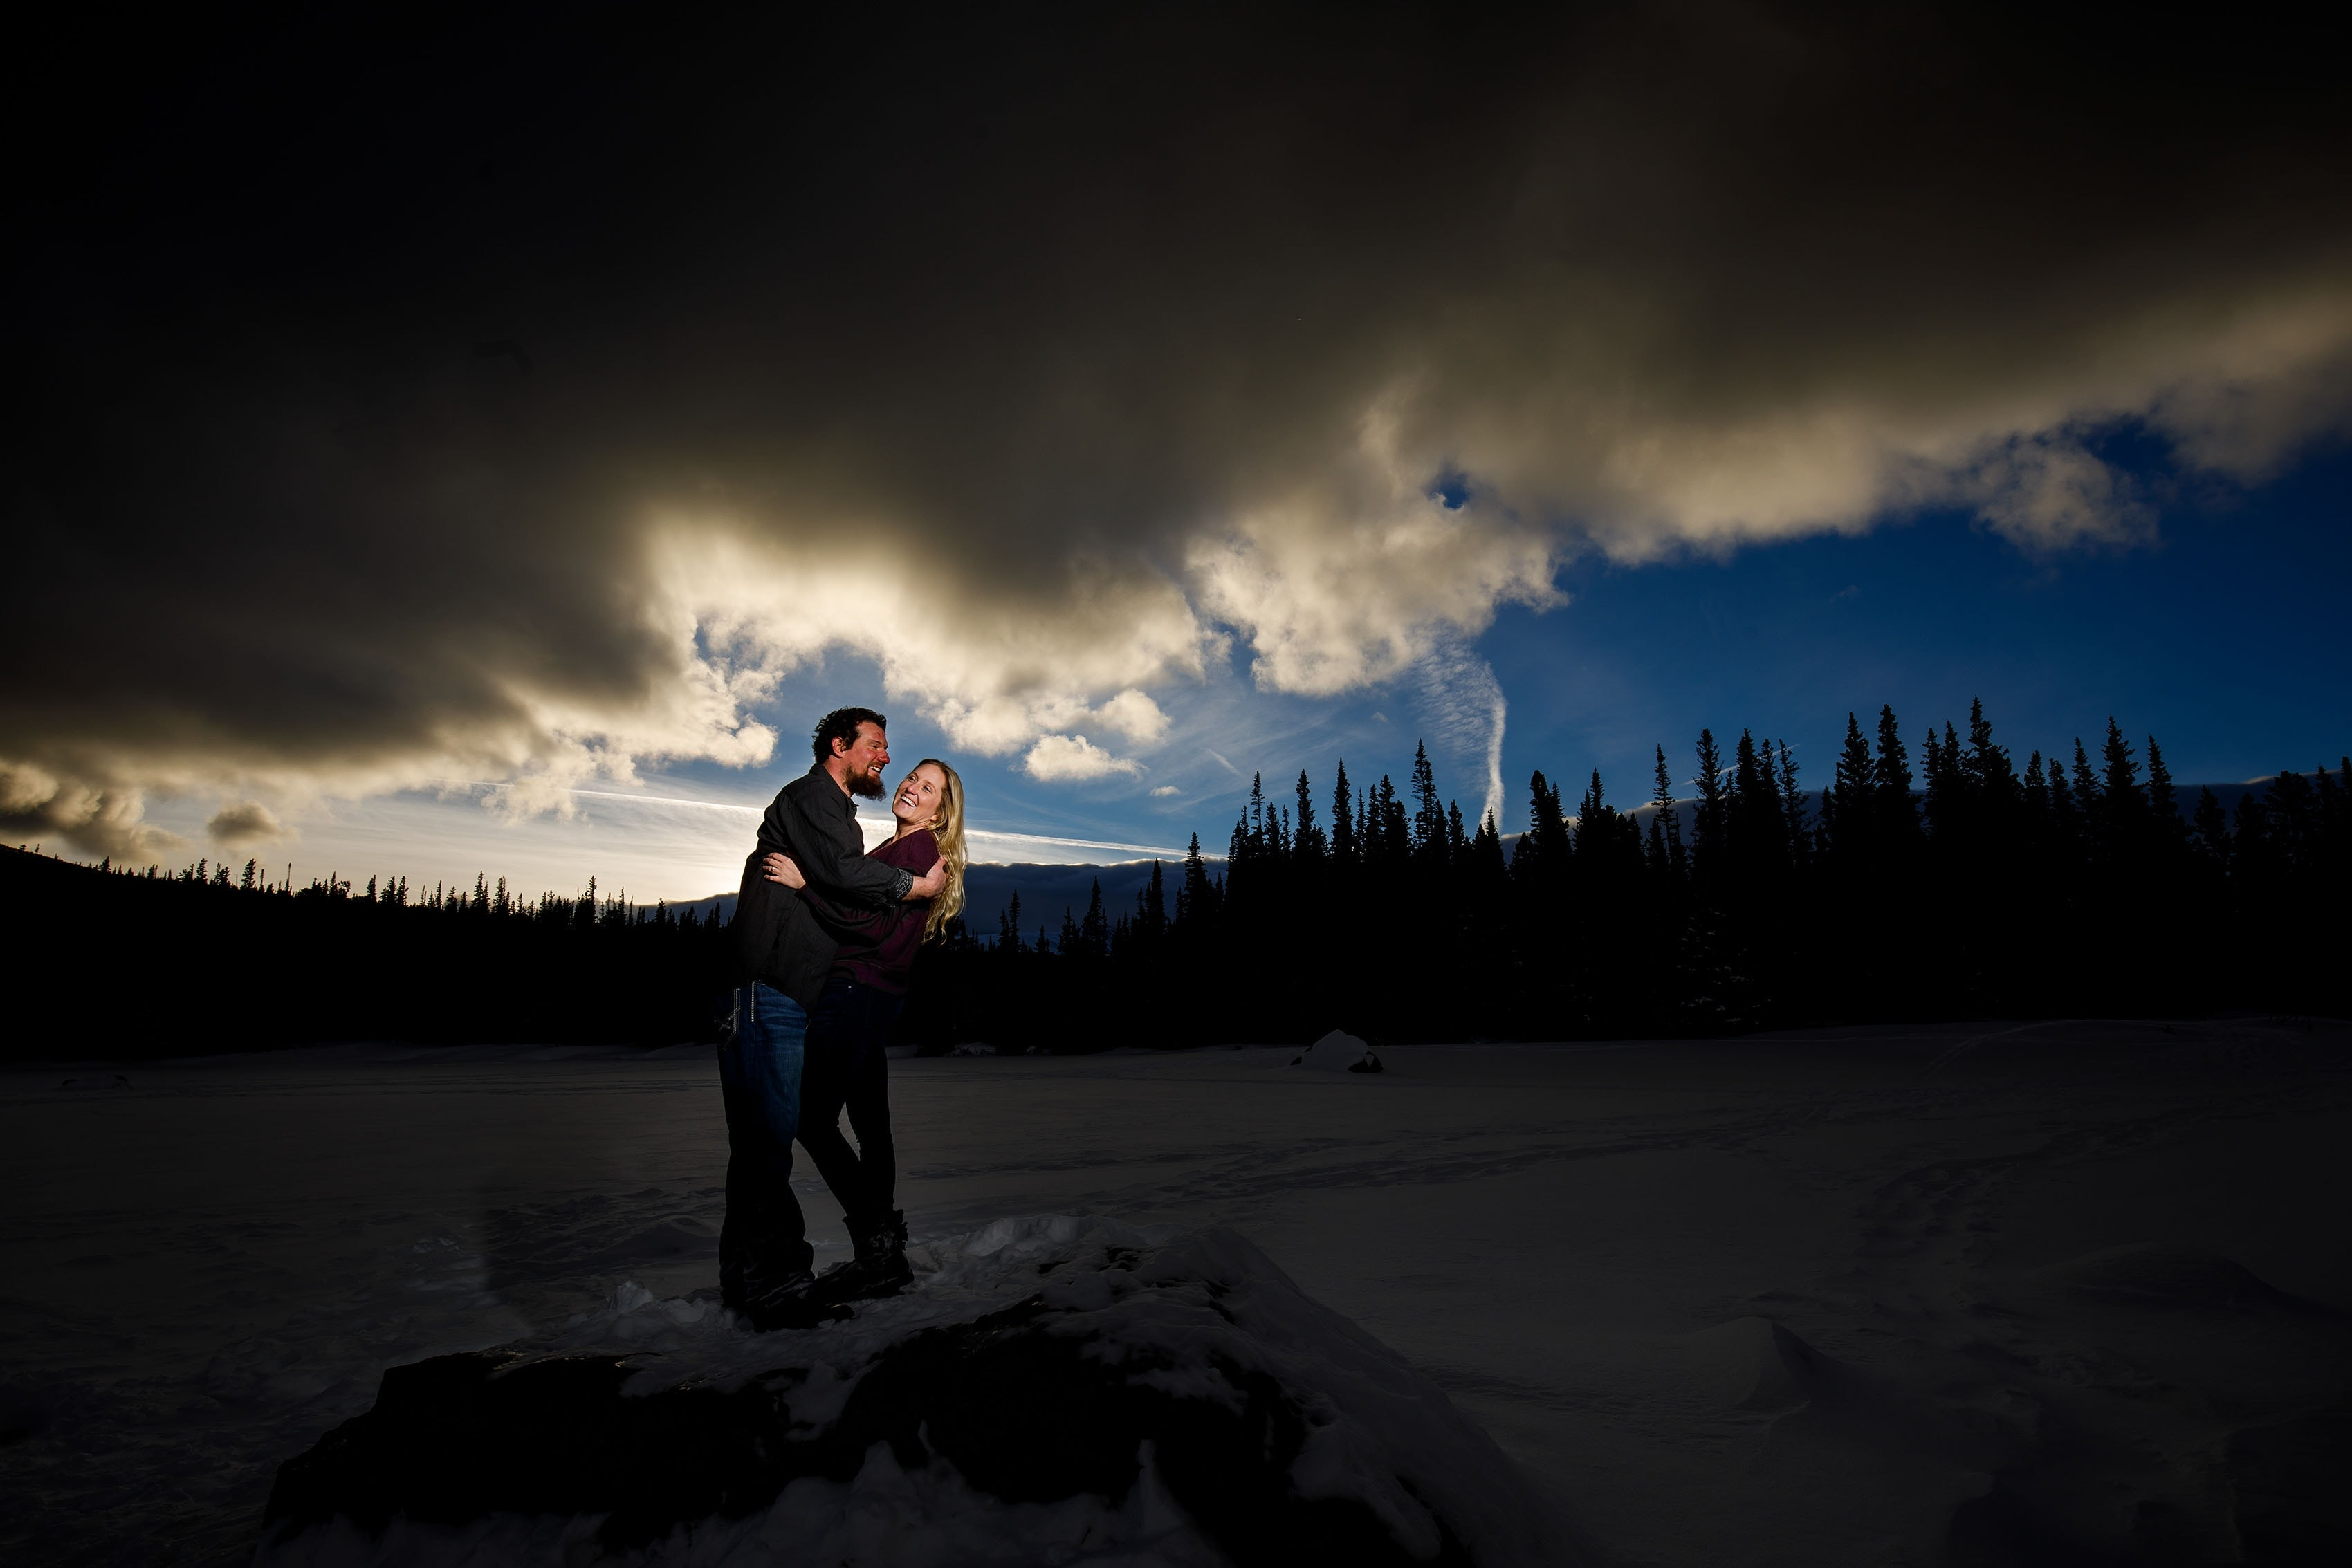 Aaron and Meaghan pose as the sun sets during their Brainard Lake Engagement session in Colorado